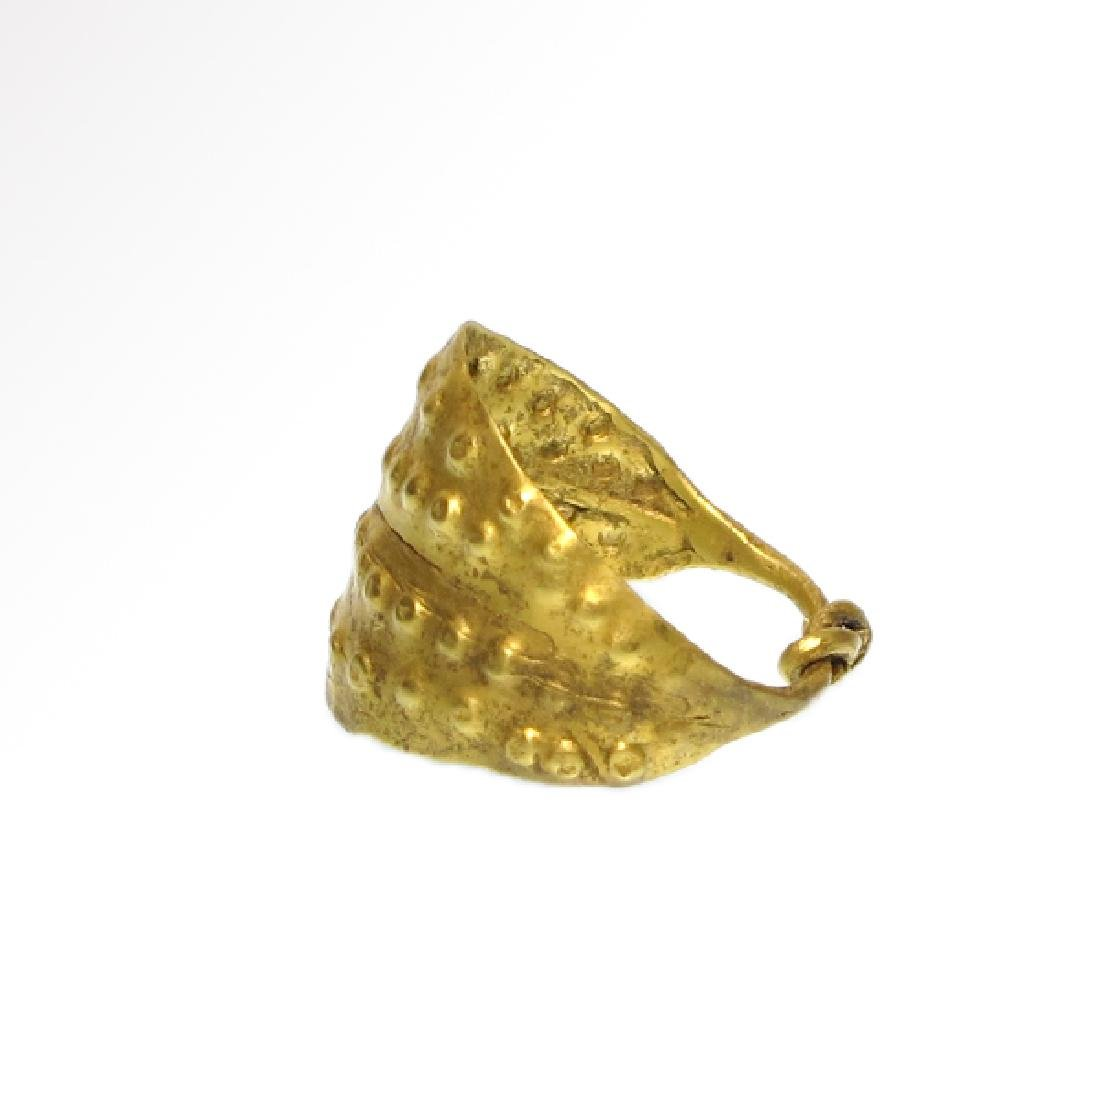 Viking Gold Ring with Punched Decoration, 11th Century - 4